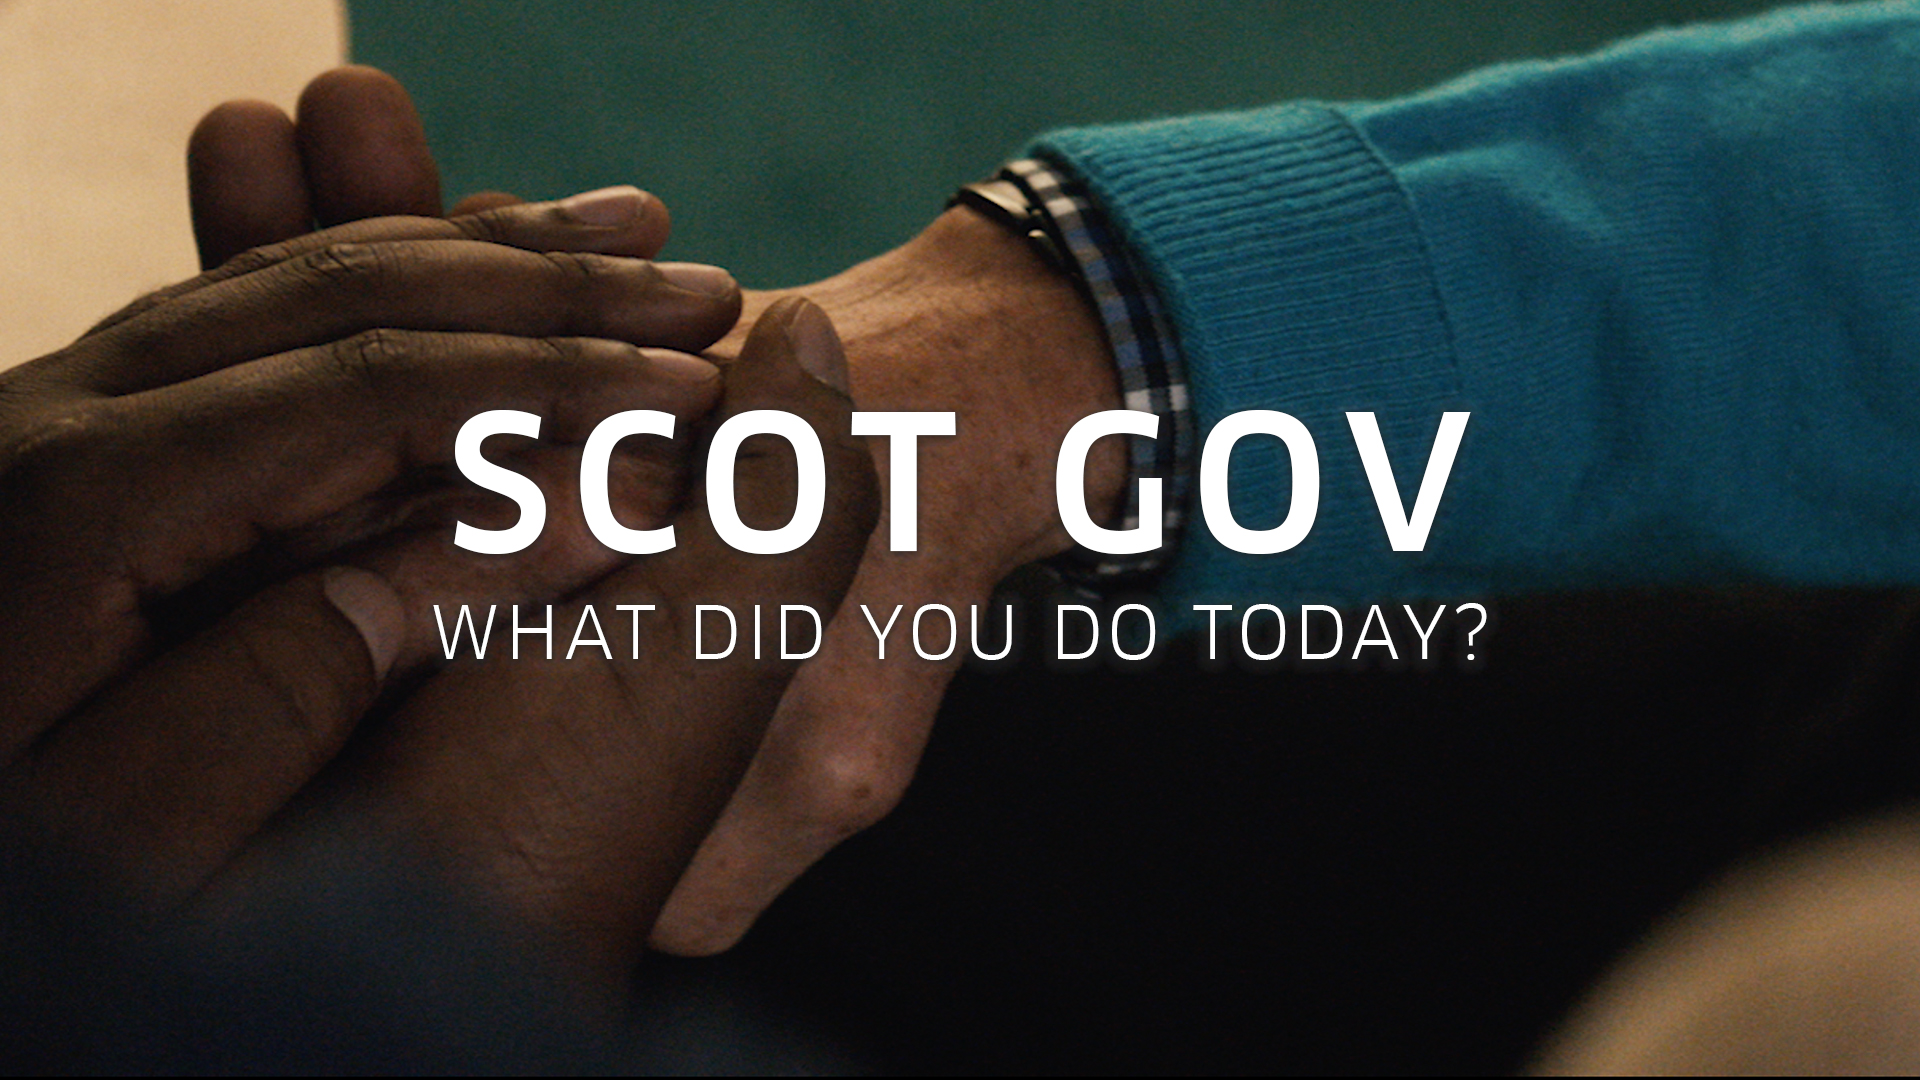 Scot Gov - What Did You Do Today?